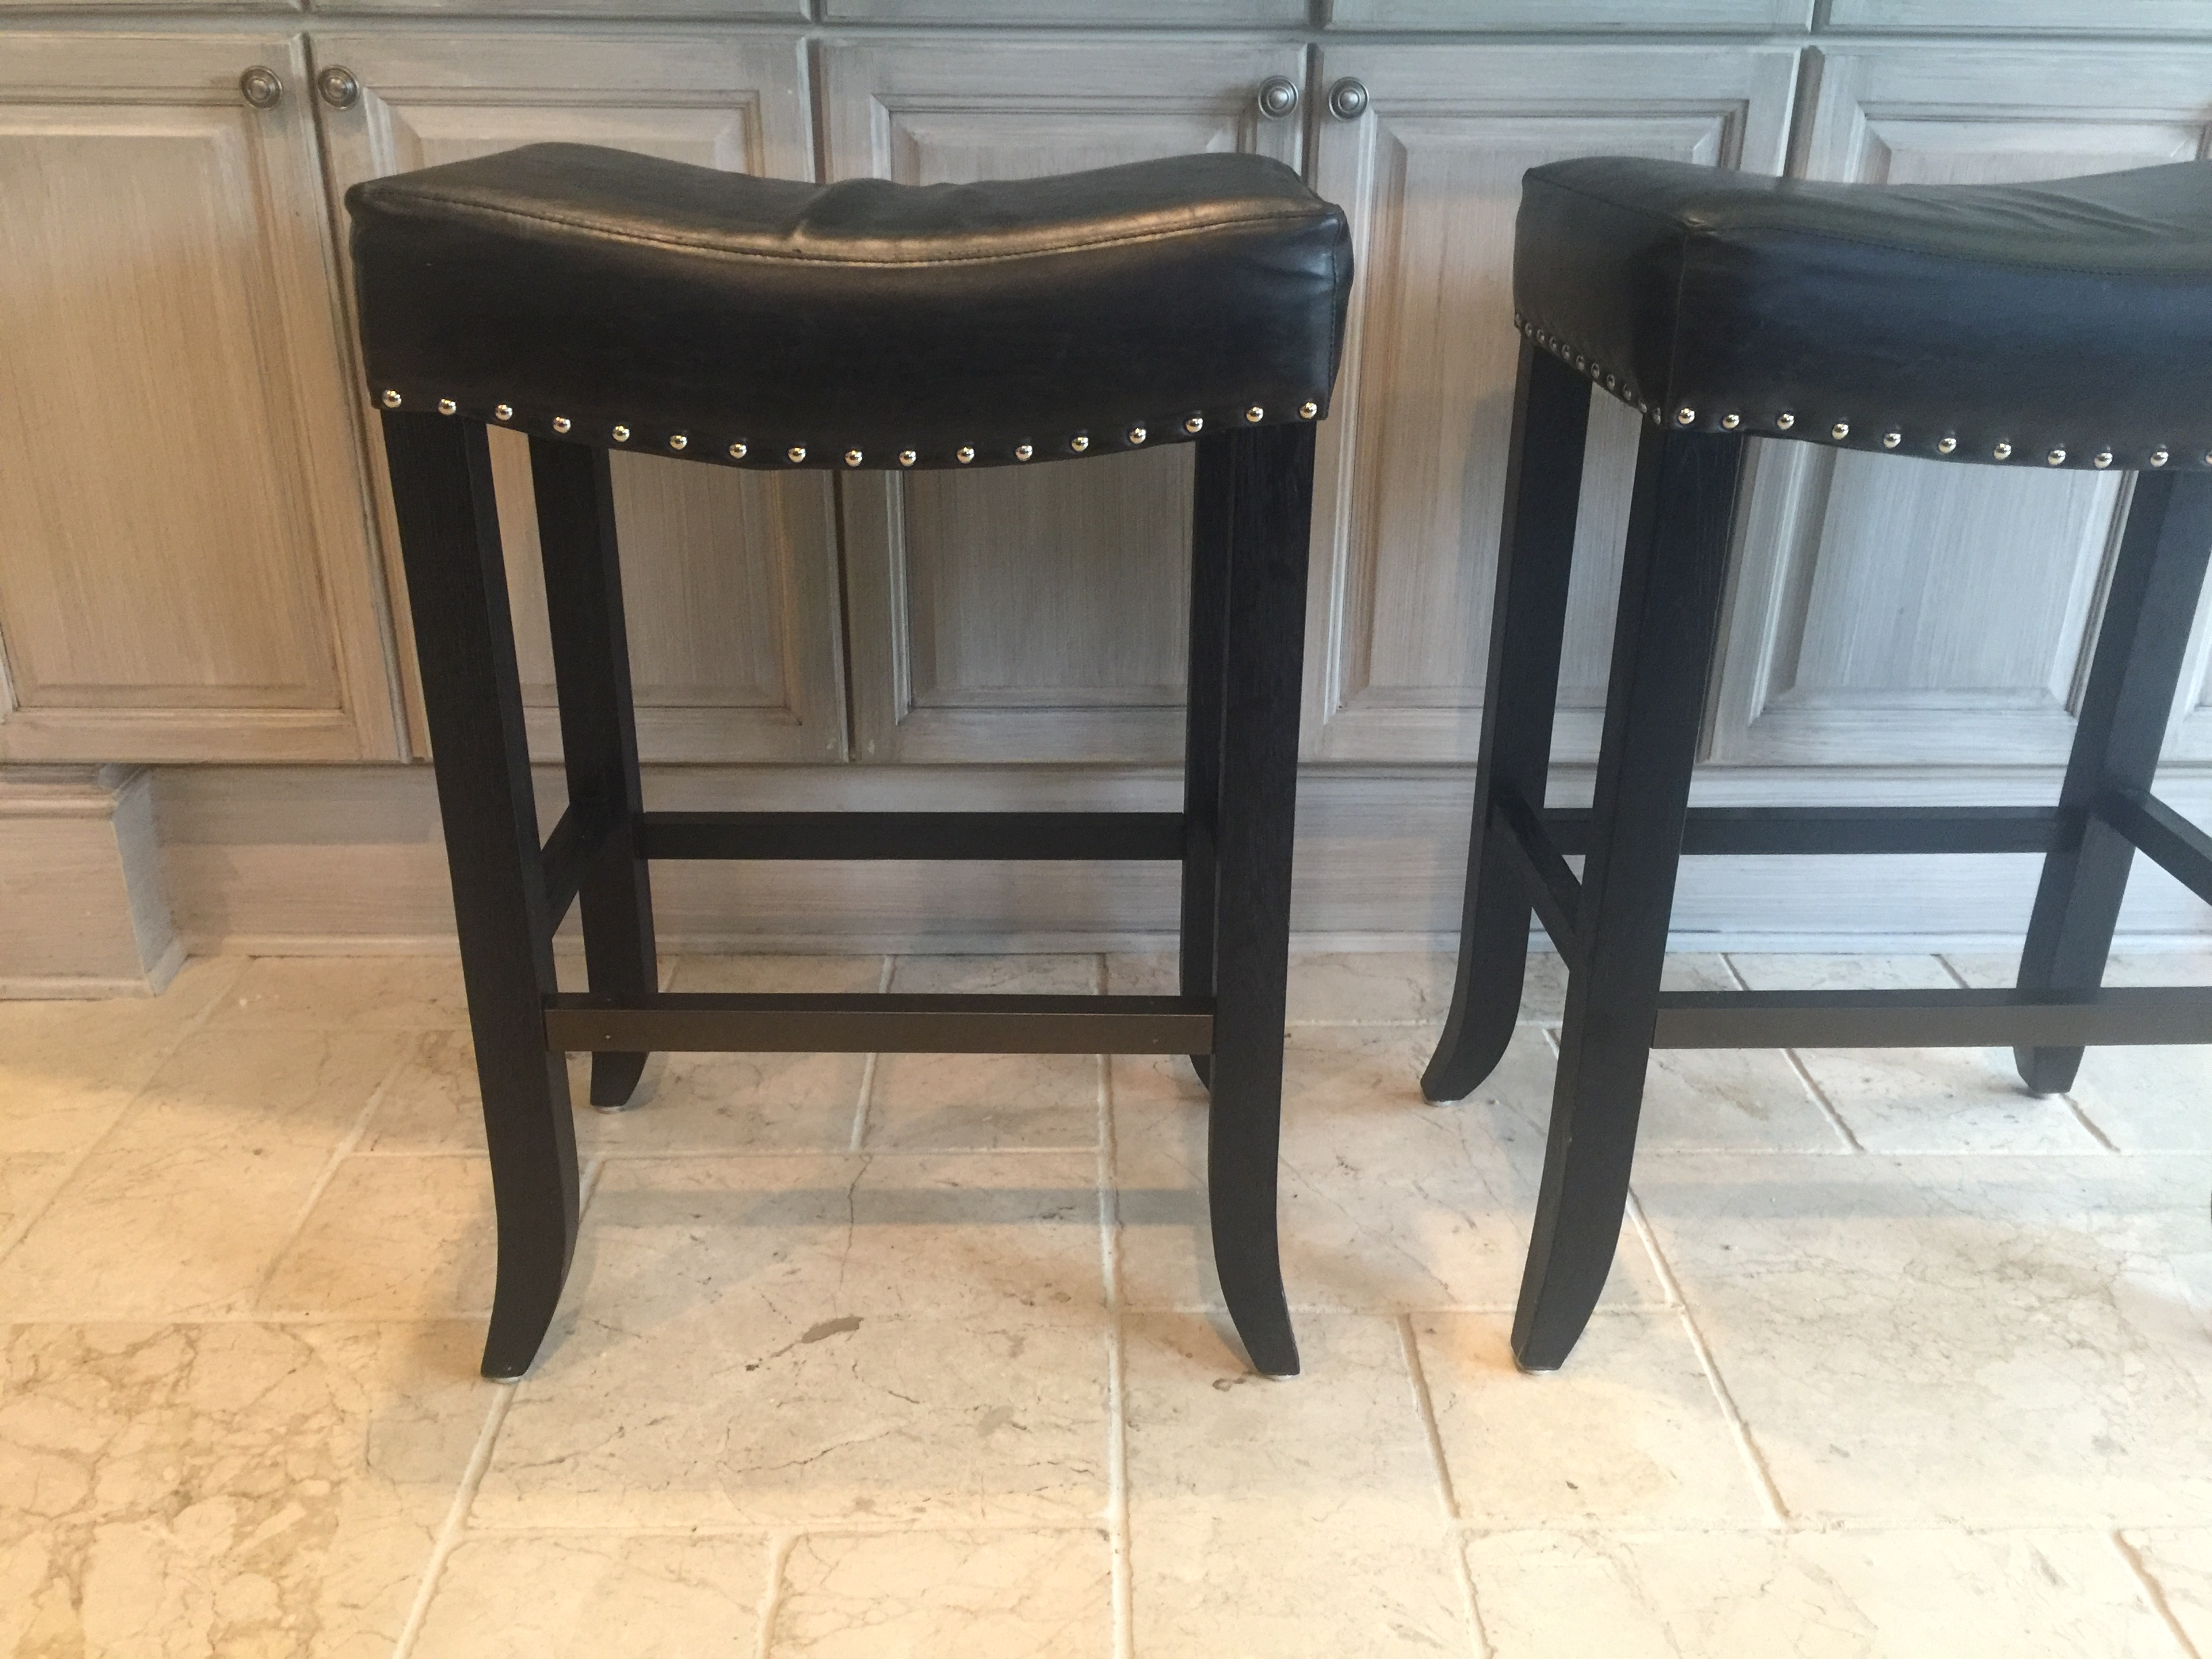 chairs legs protectors back chair furniture glides and leg that actually work